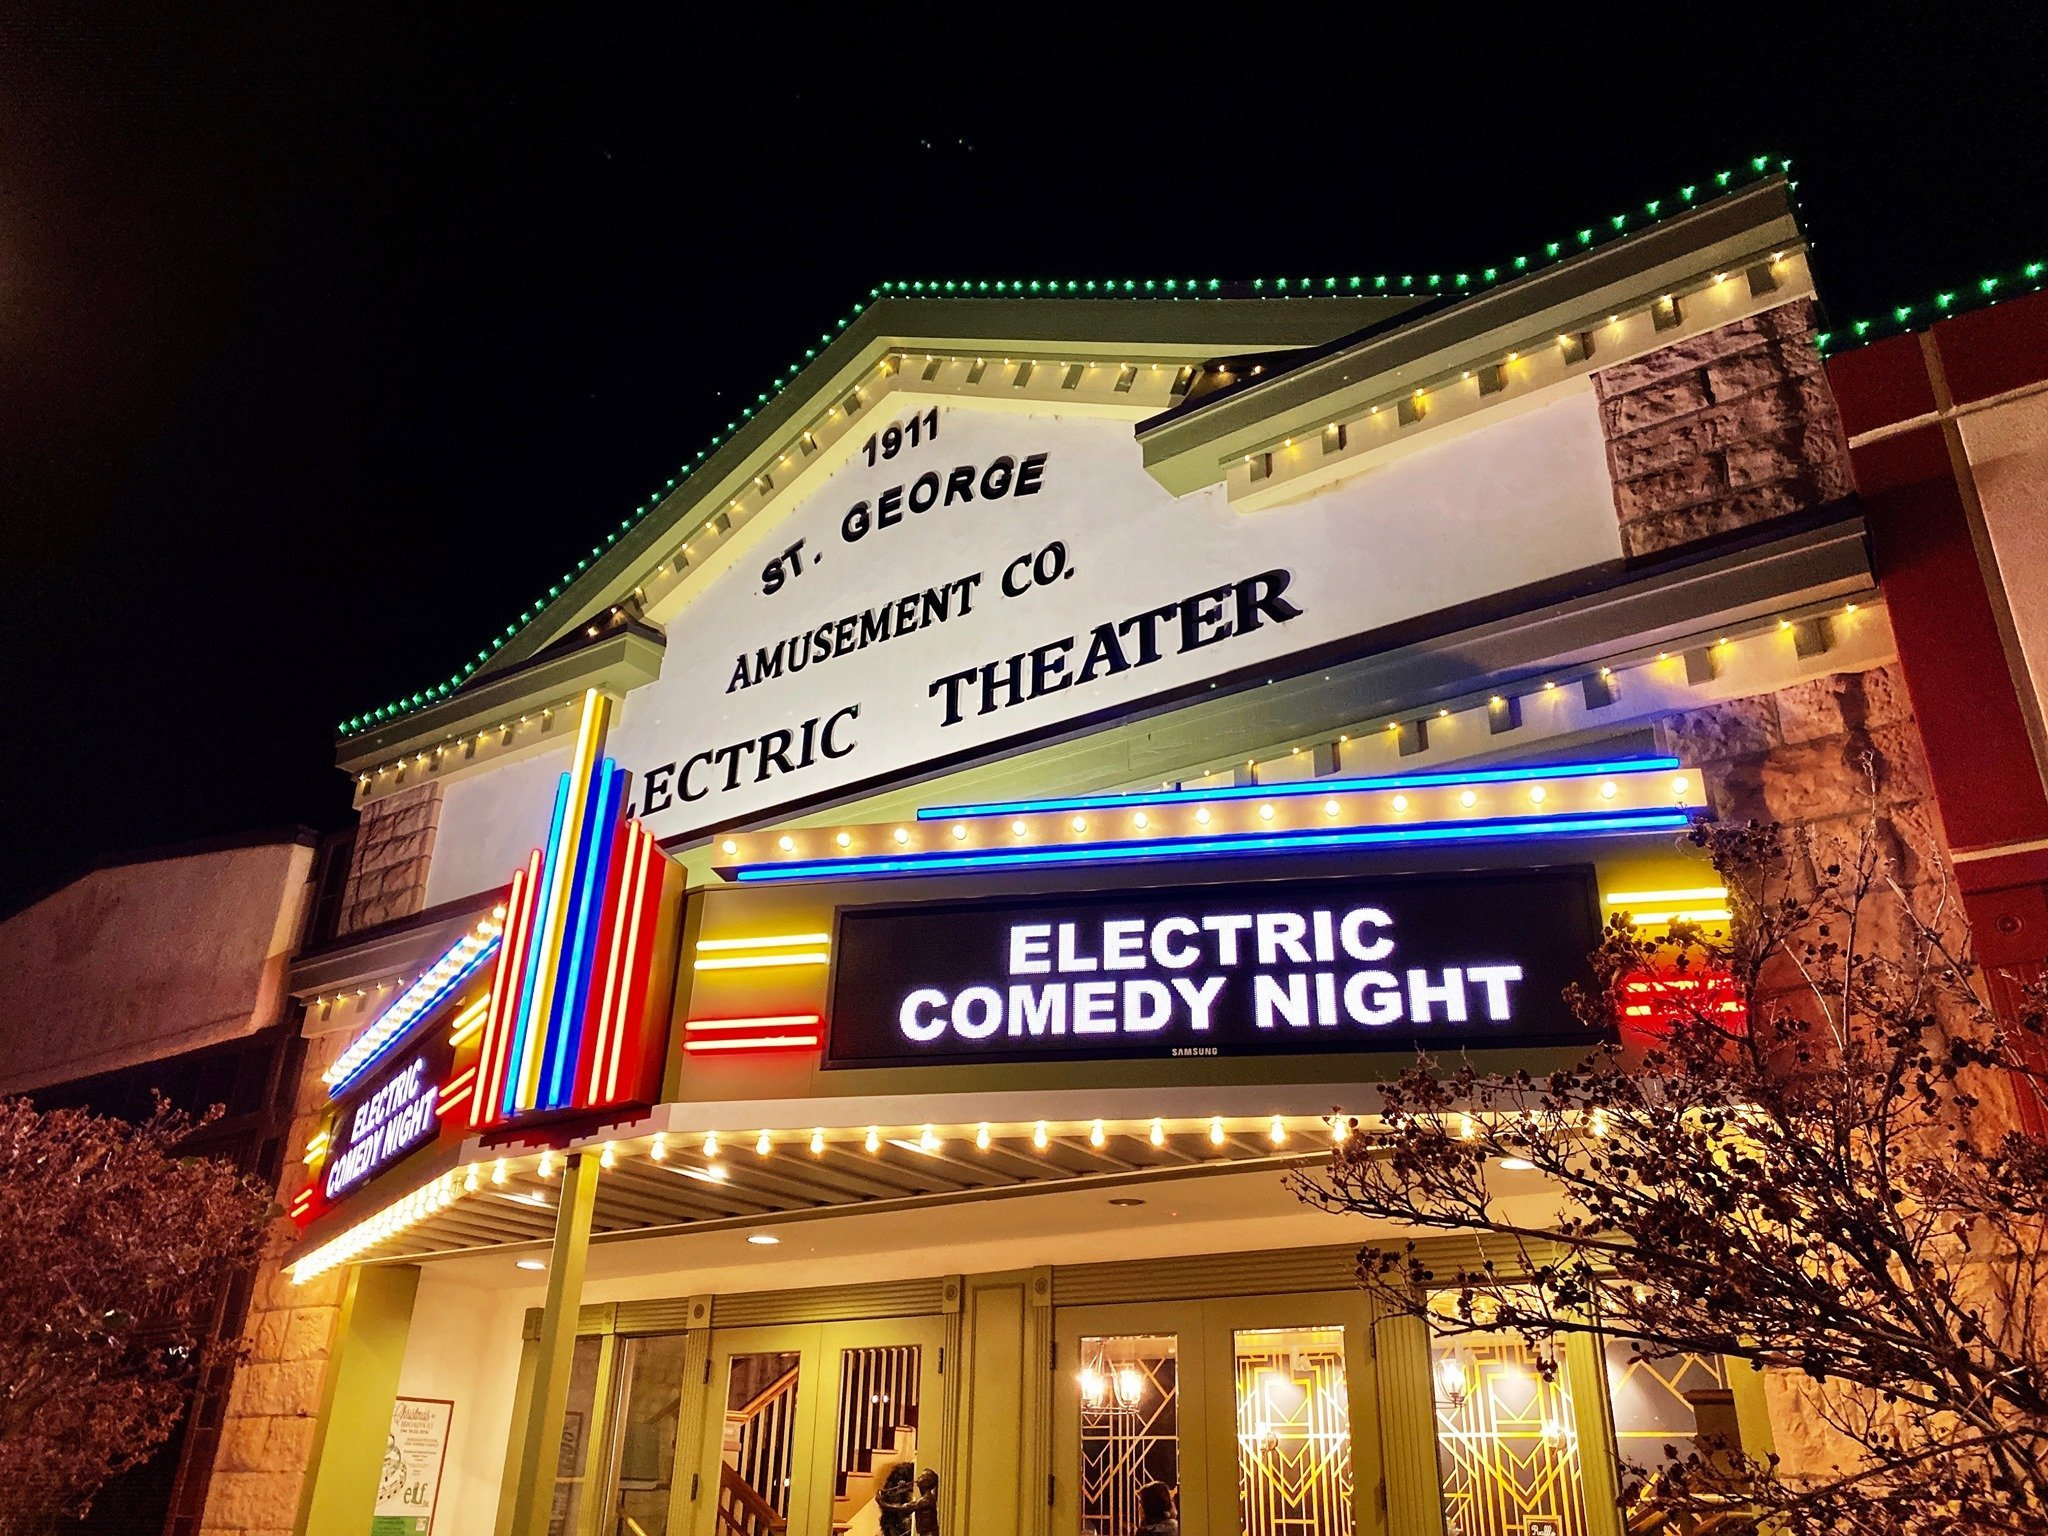 Electric Comedy Night